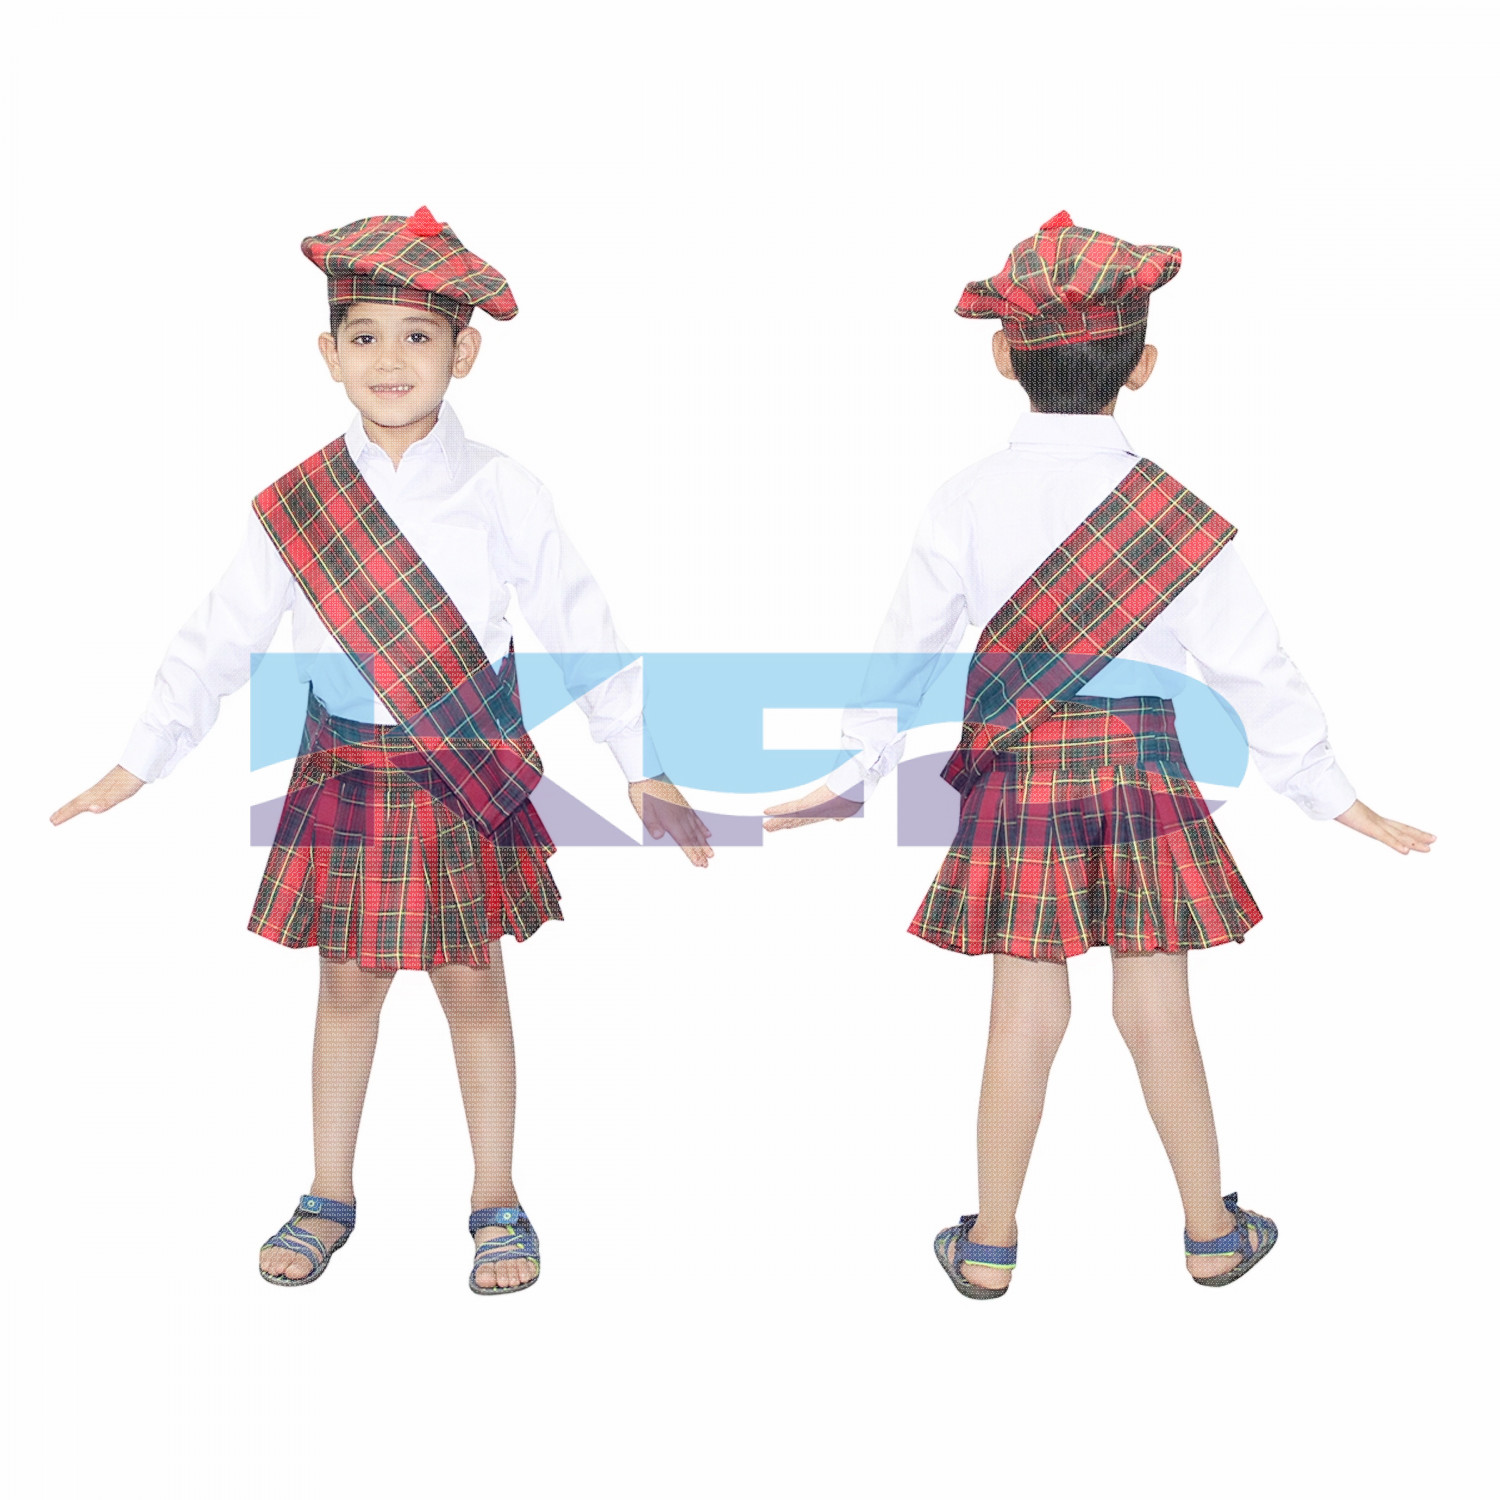 Scottish Boy/Party Costumes/Veneziano for Halloween Carnival Cosplay Costume/Tartan Fancy Dress/International Traditional Costume For Kids/School Annual function/Theme Party/Competition/Stage Shows Dress